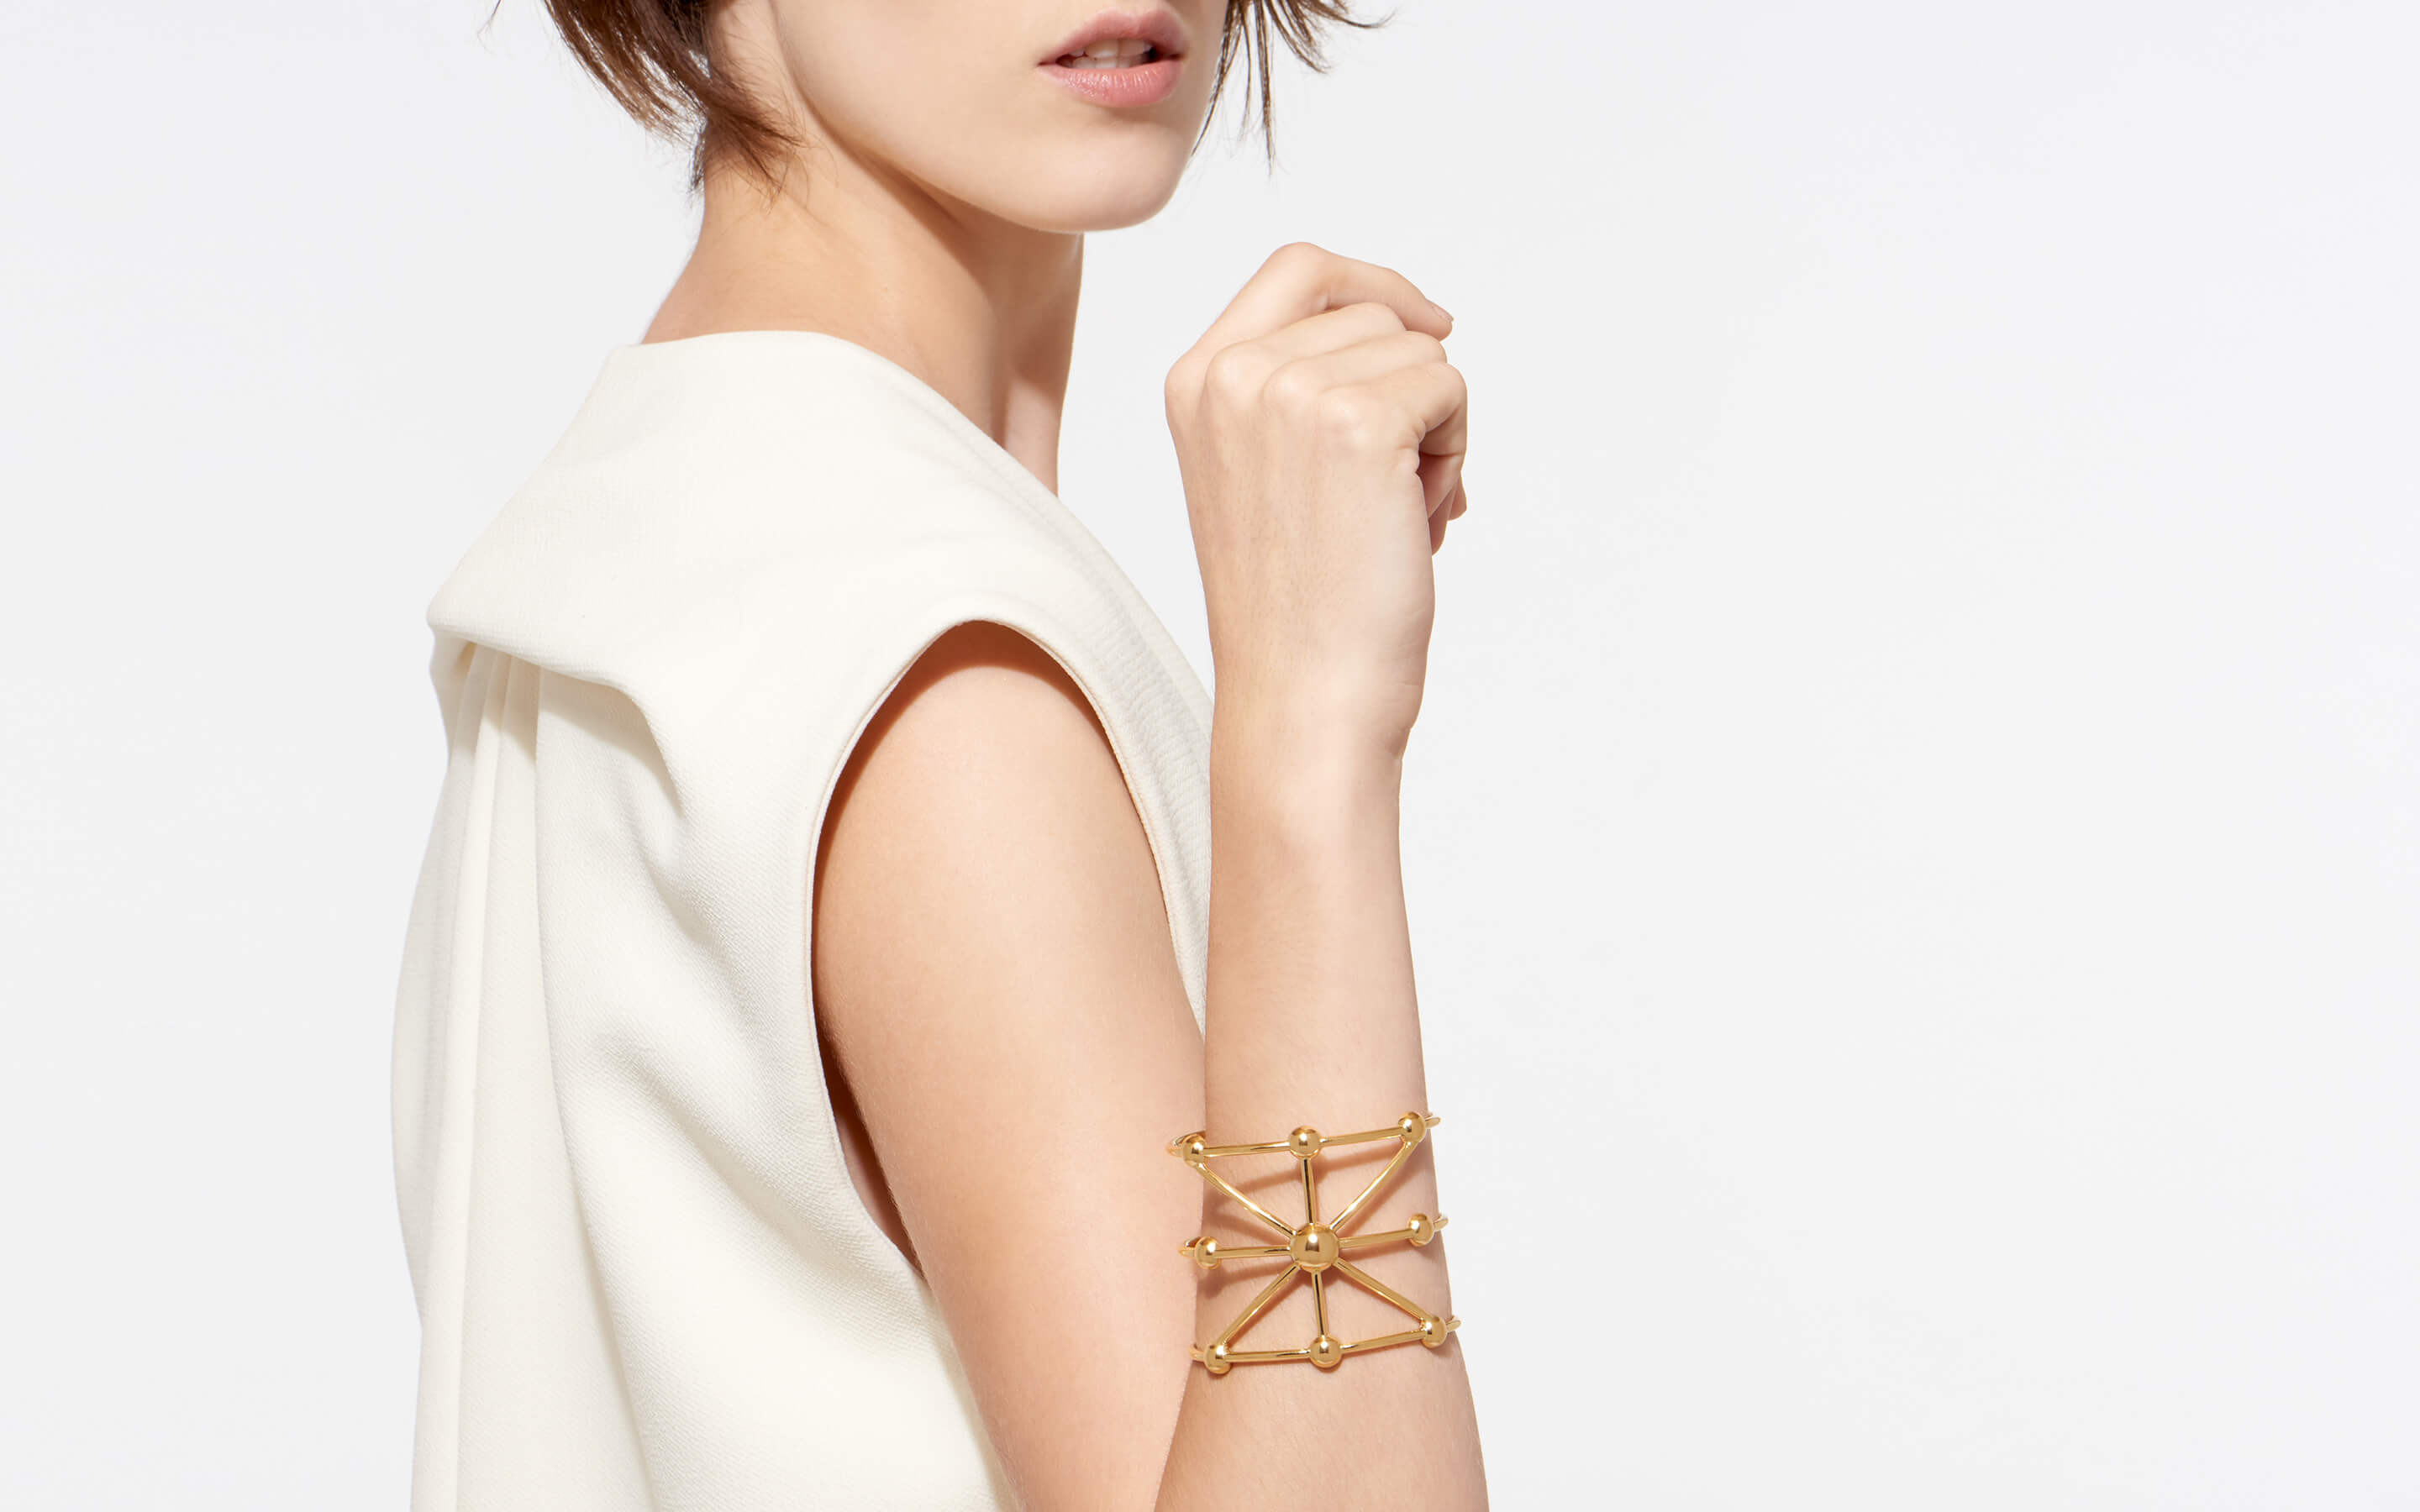 lissome model showcasing 22 karat gold cuff with globes in stellar shape